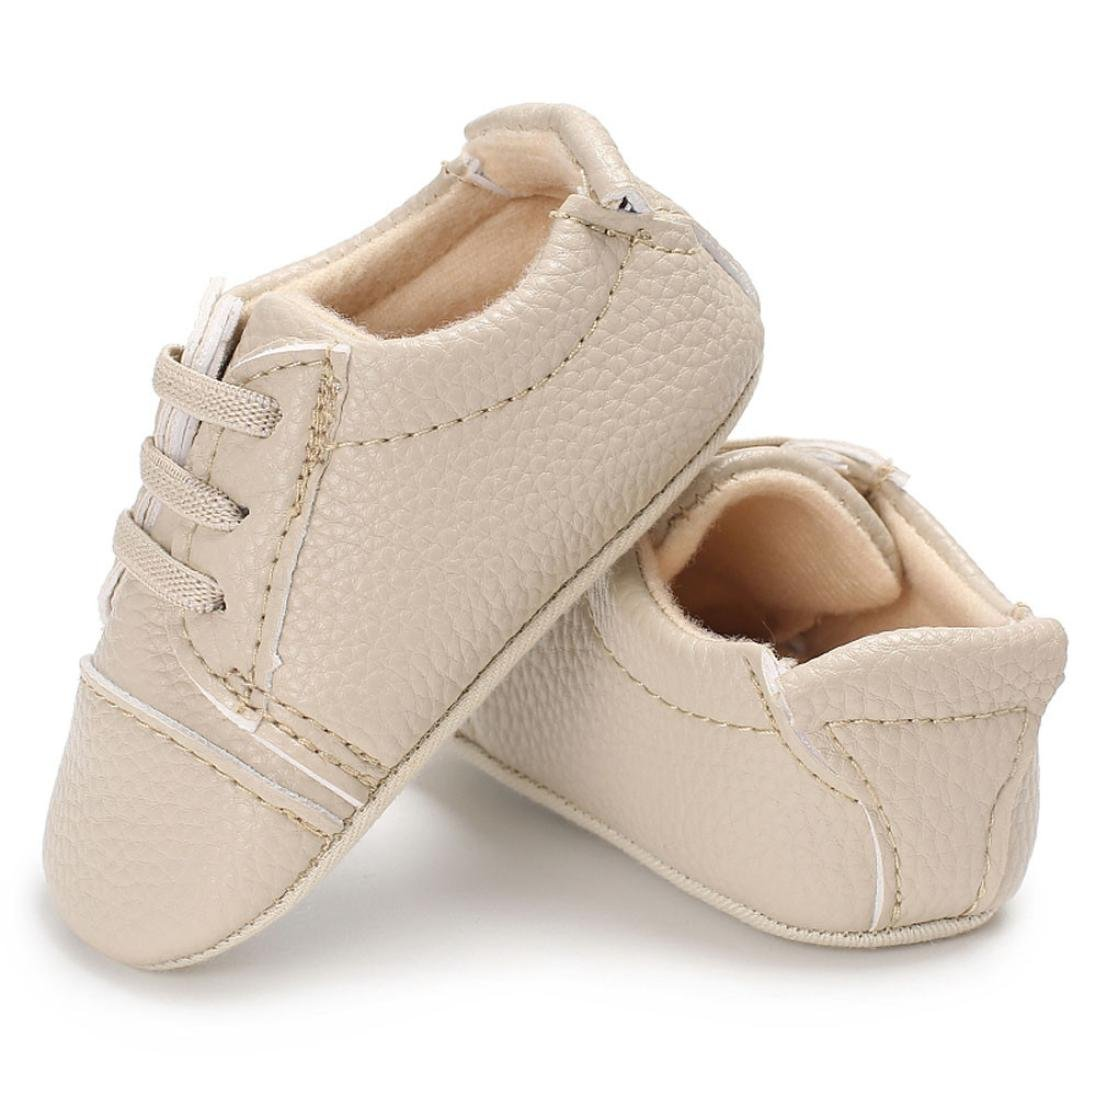 Baby Girl boy Soft Sole Crib Toddler Newborn Lace UP Shoes